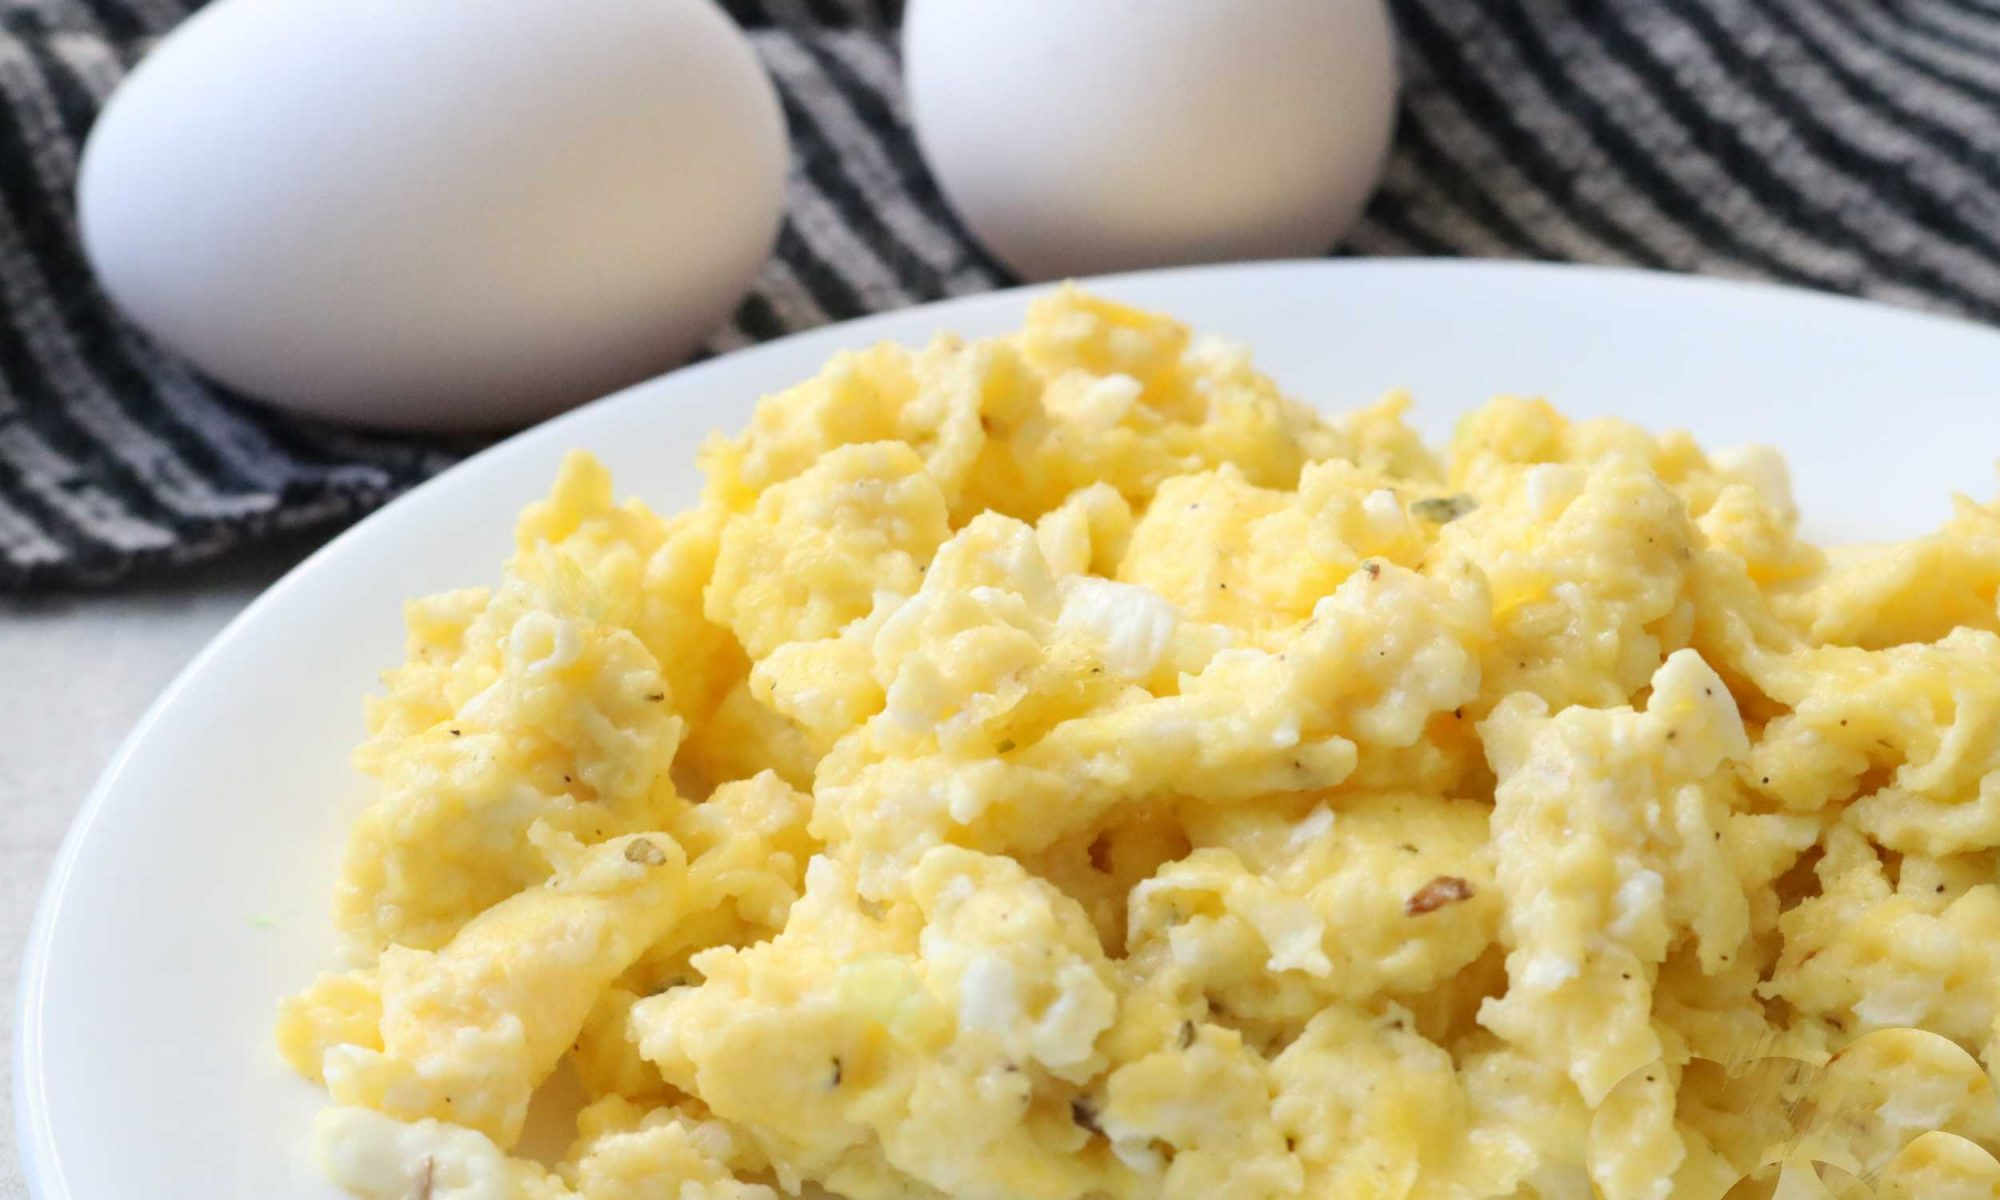 make the creamiest scrambled eggs ever with this trick recipe rh myrecipes com scrambled eggs with cottage cheese calories scrambled eggs with cottage cheese in microwave